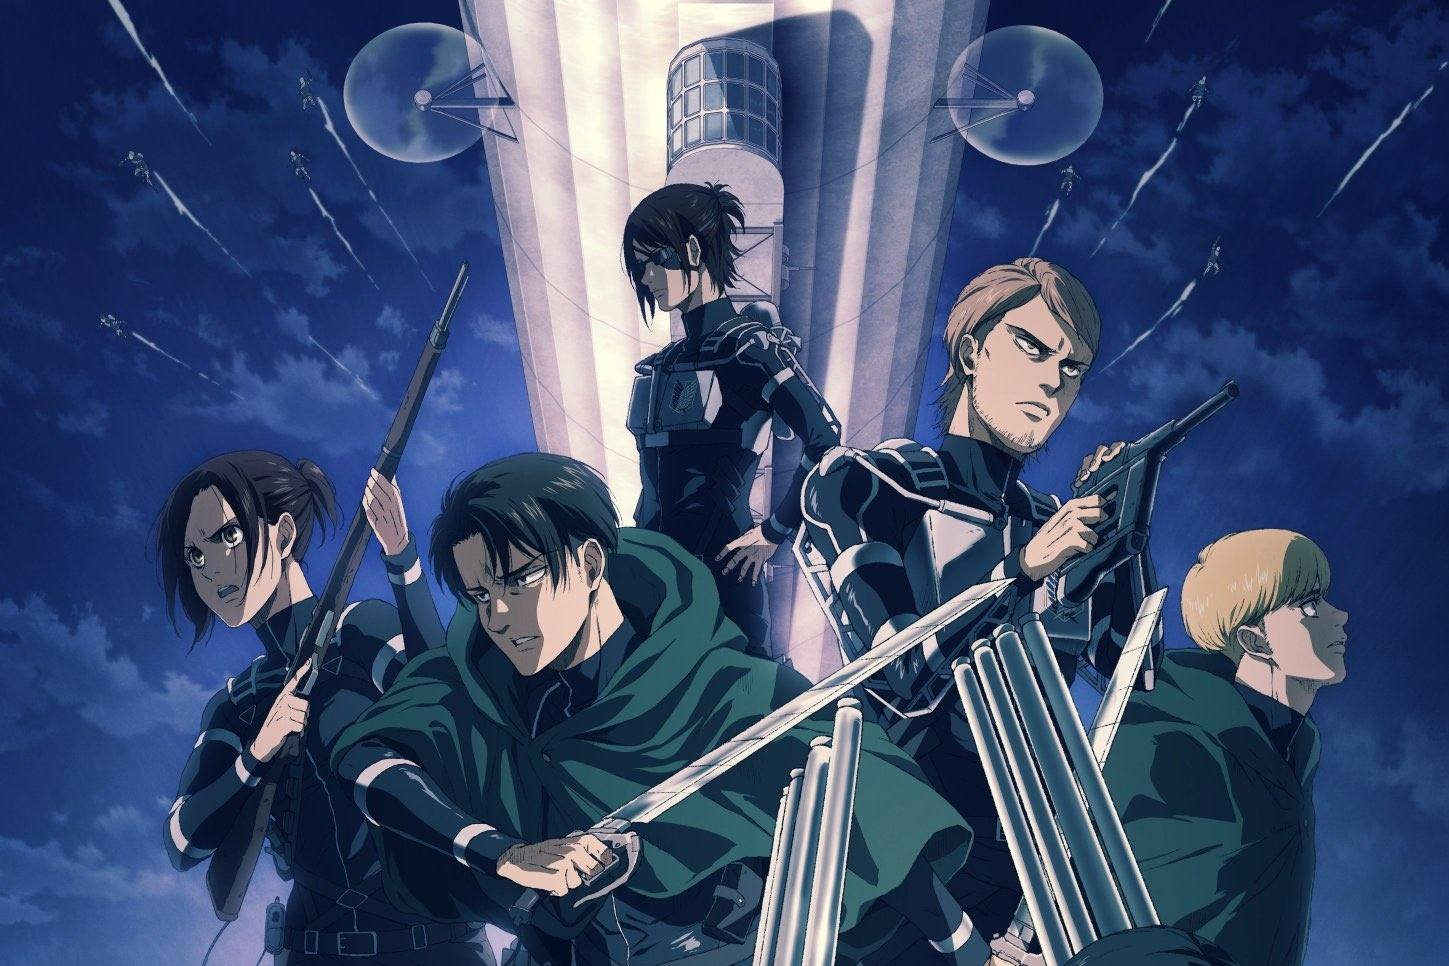 Shingeki No Kyojin Episode 12 Spoilers, Release Date, Preview And More